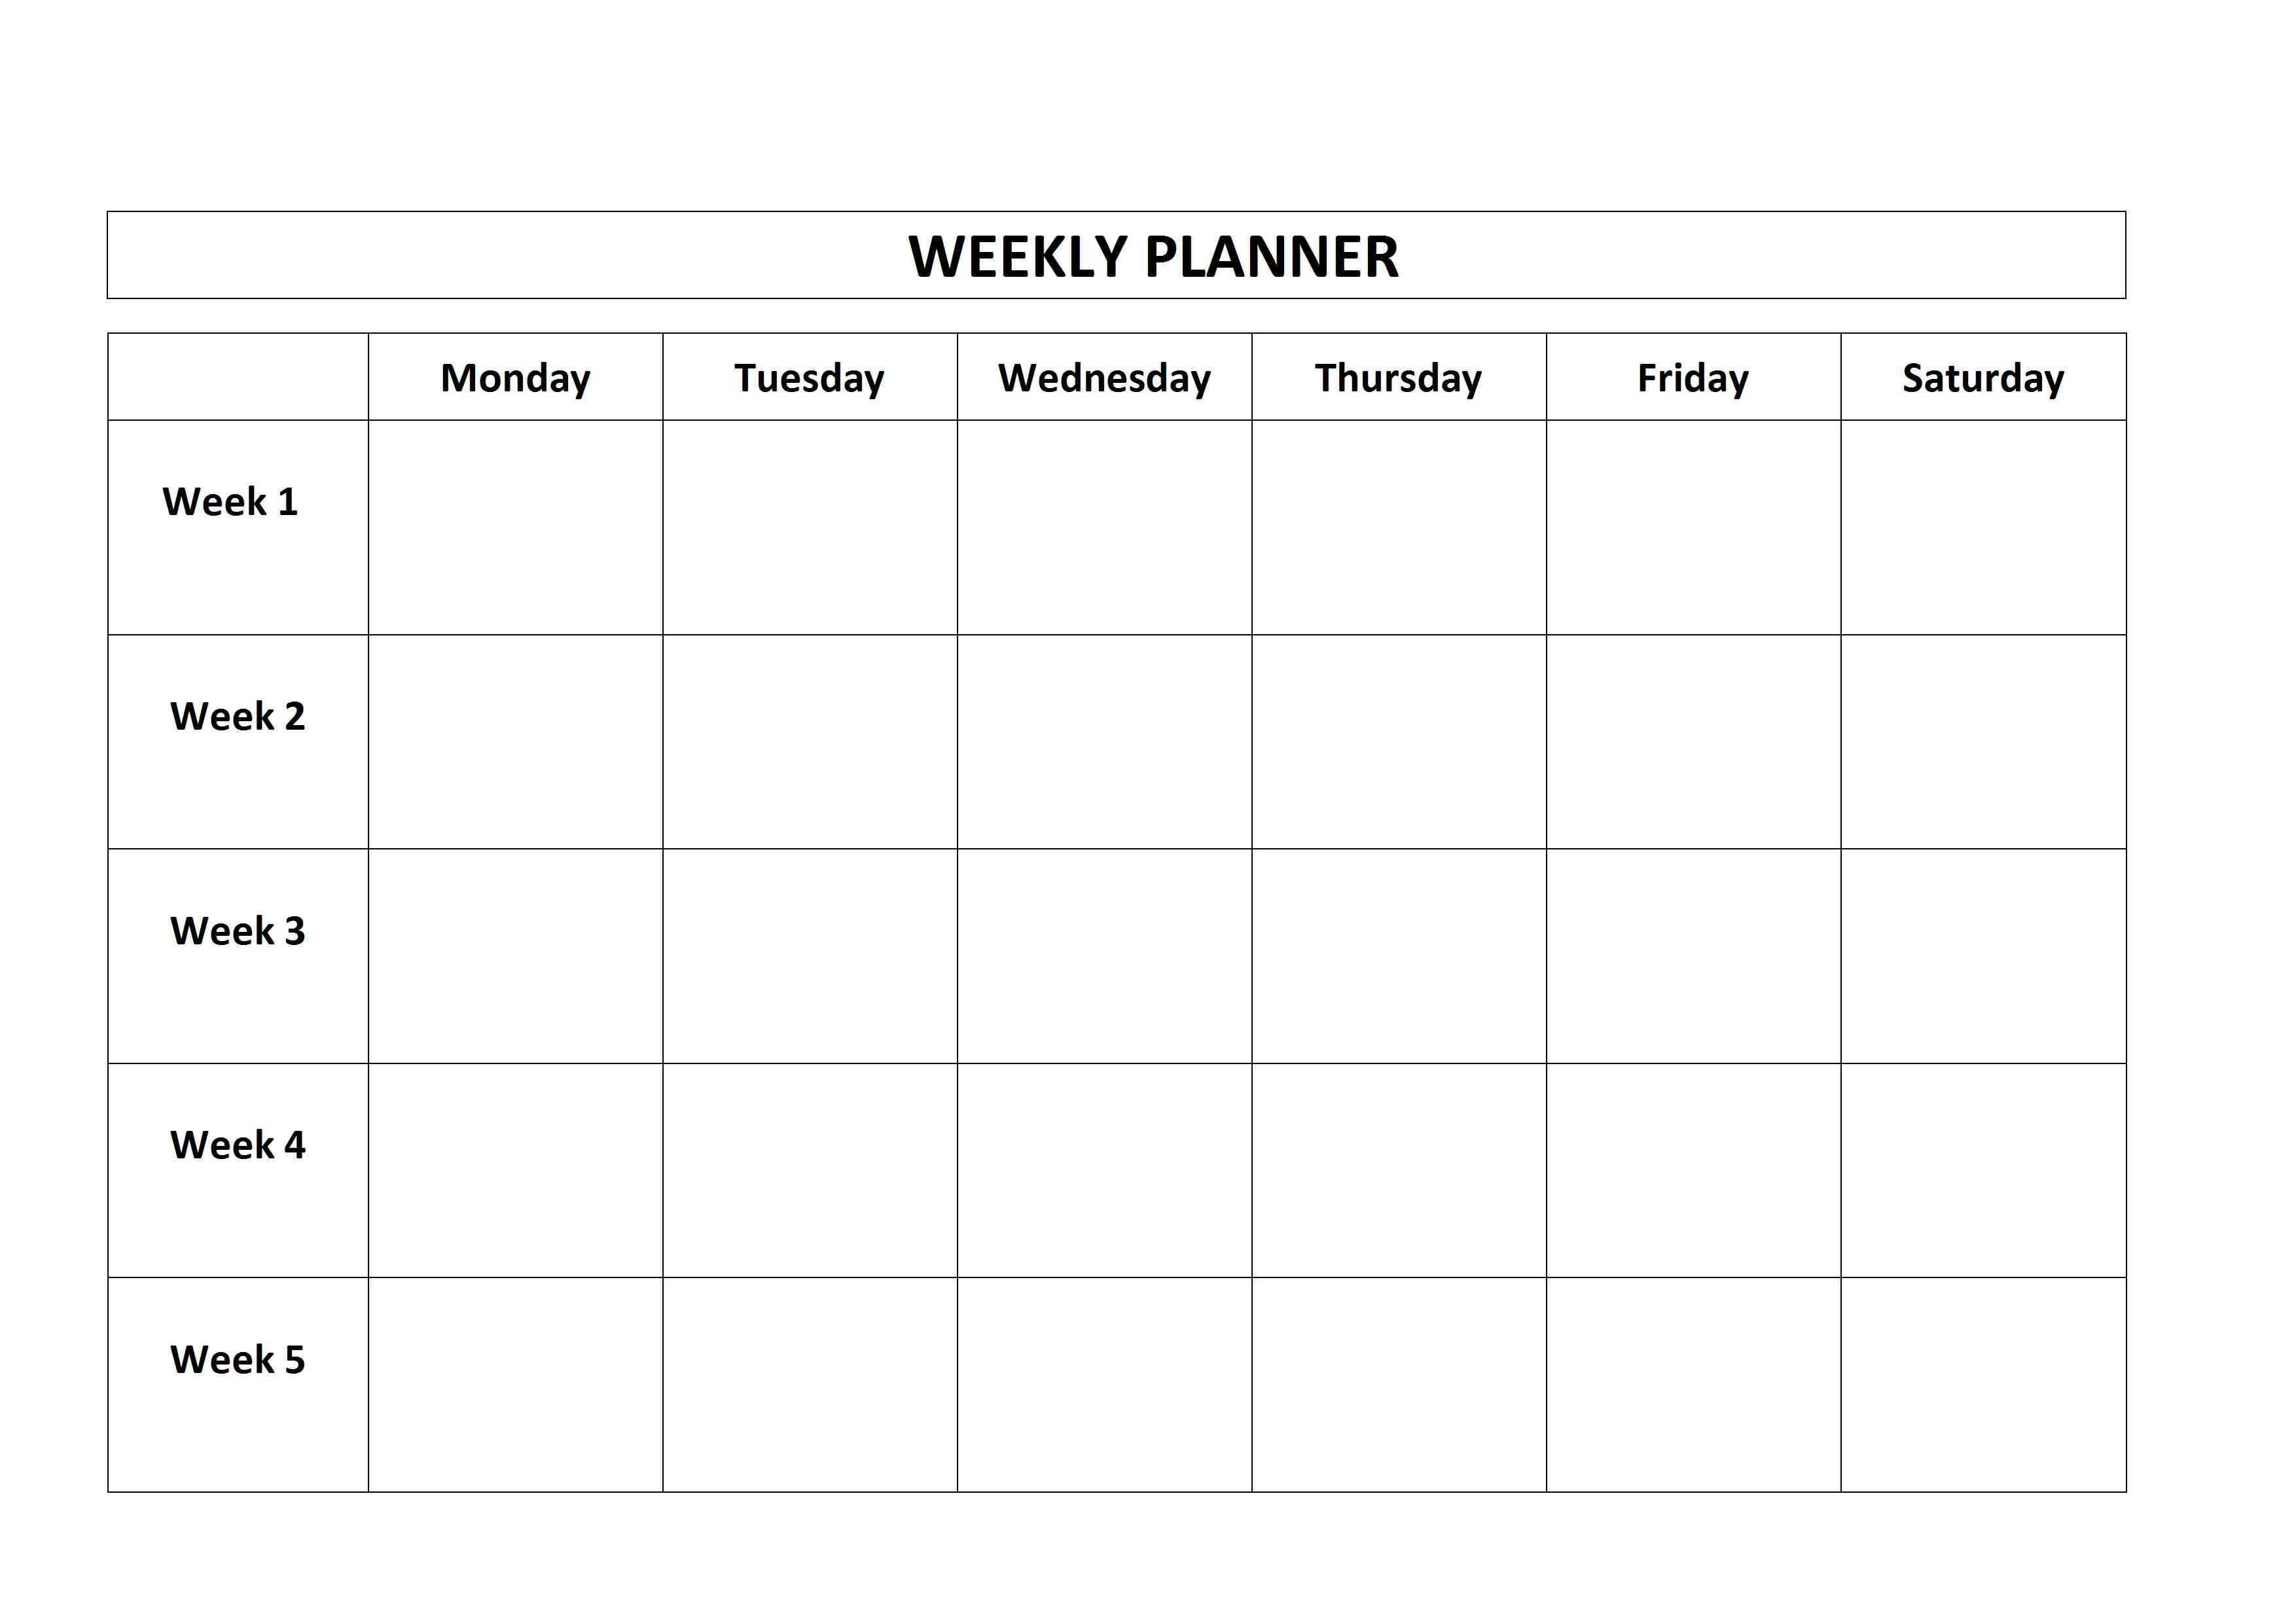 Free Printable Weekly Planner Monday Friday School Calendar within Monday To Friday Planner Template